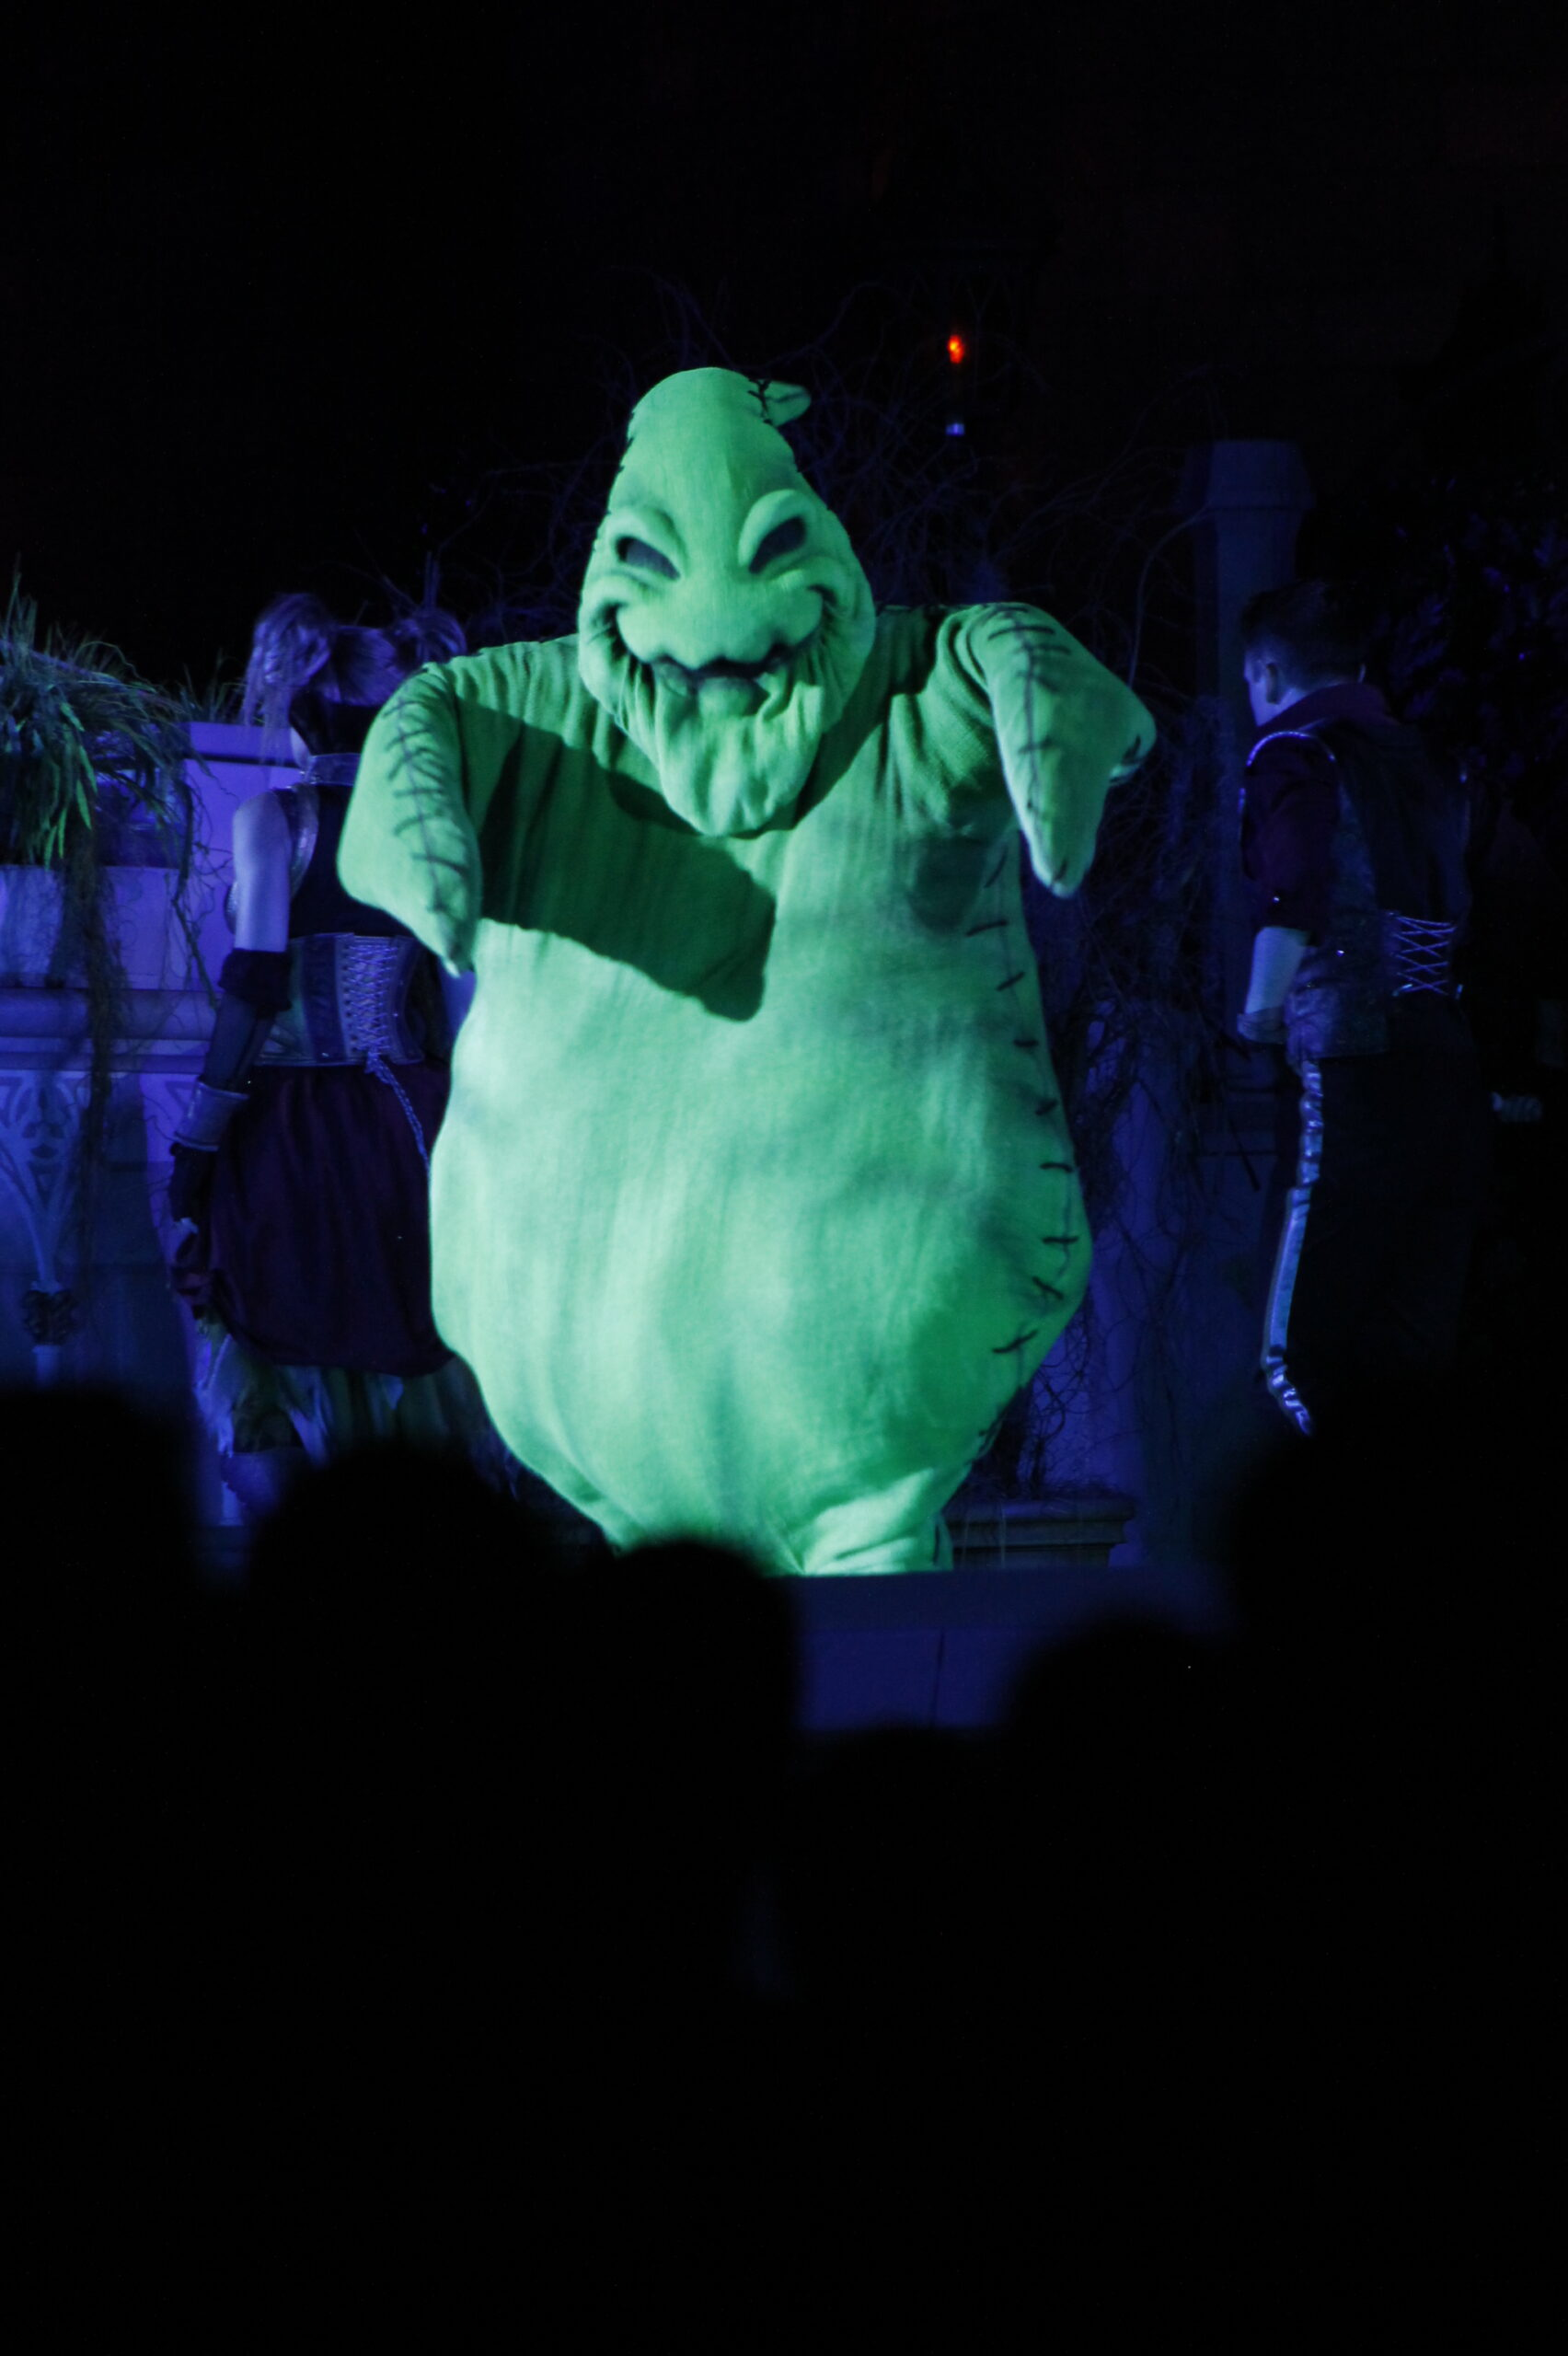 Ooogie Boogie at WDW